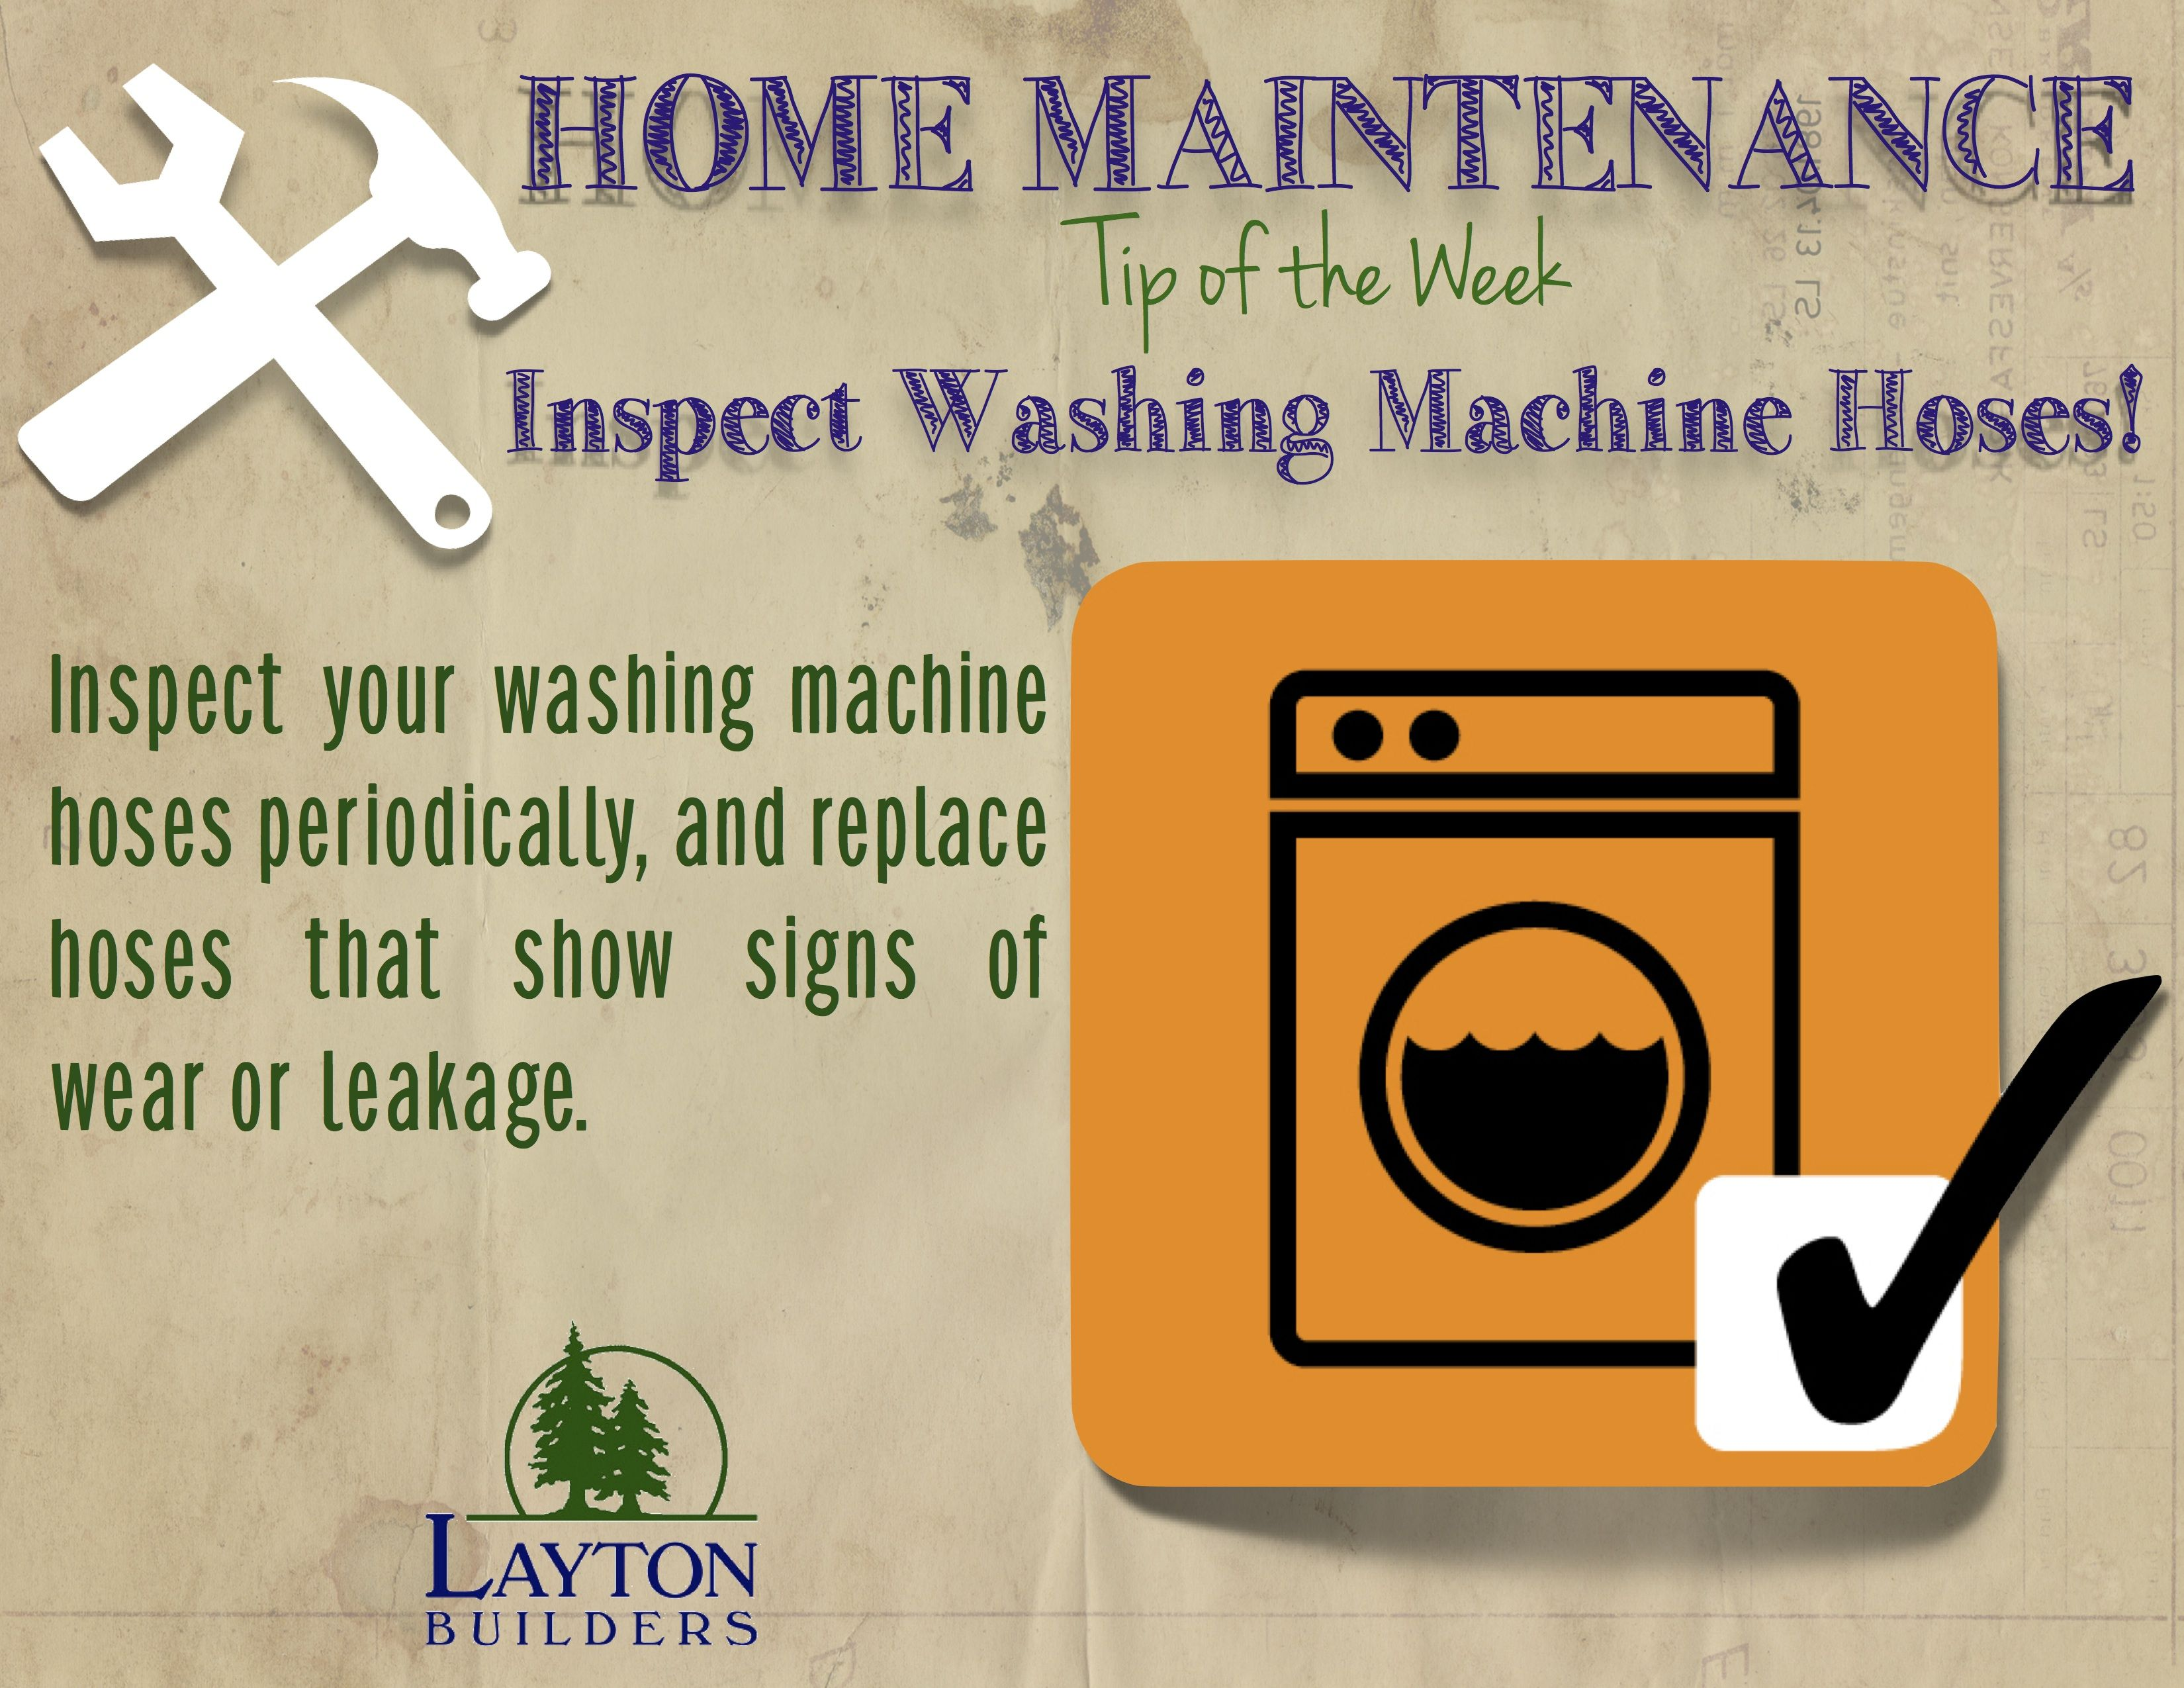 Home Maintenance Tip Of The Week From Layton Builders Inspect